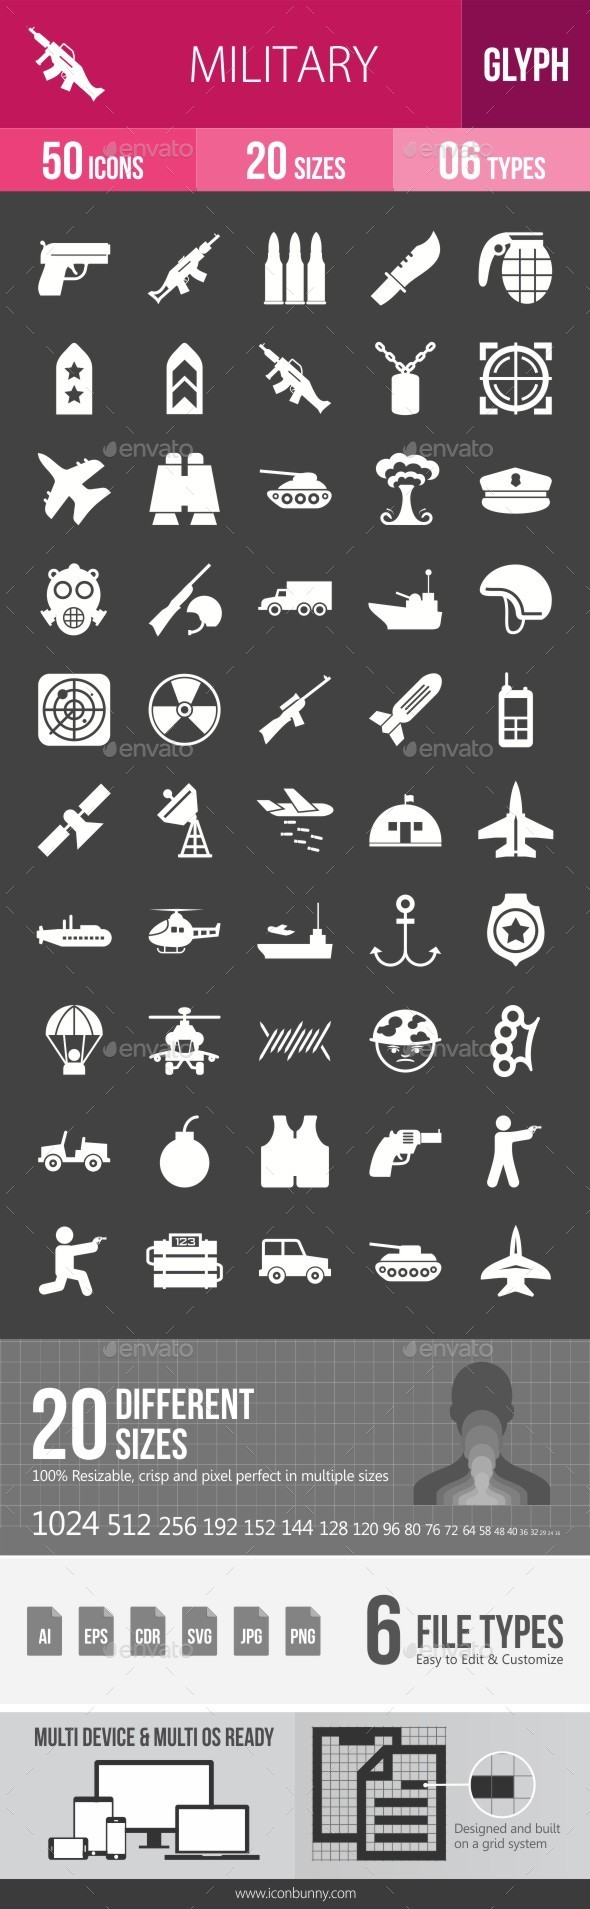 Military Glyph Inverted Icons - Icons